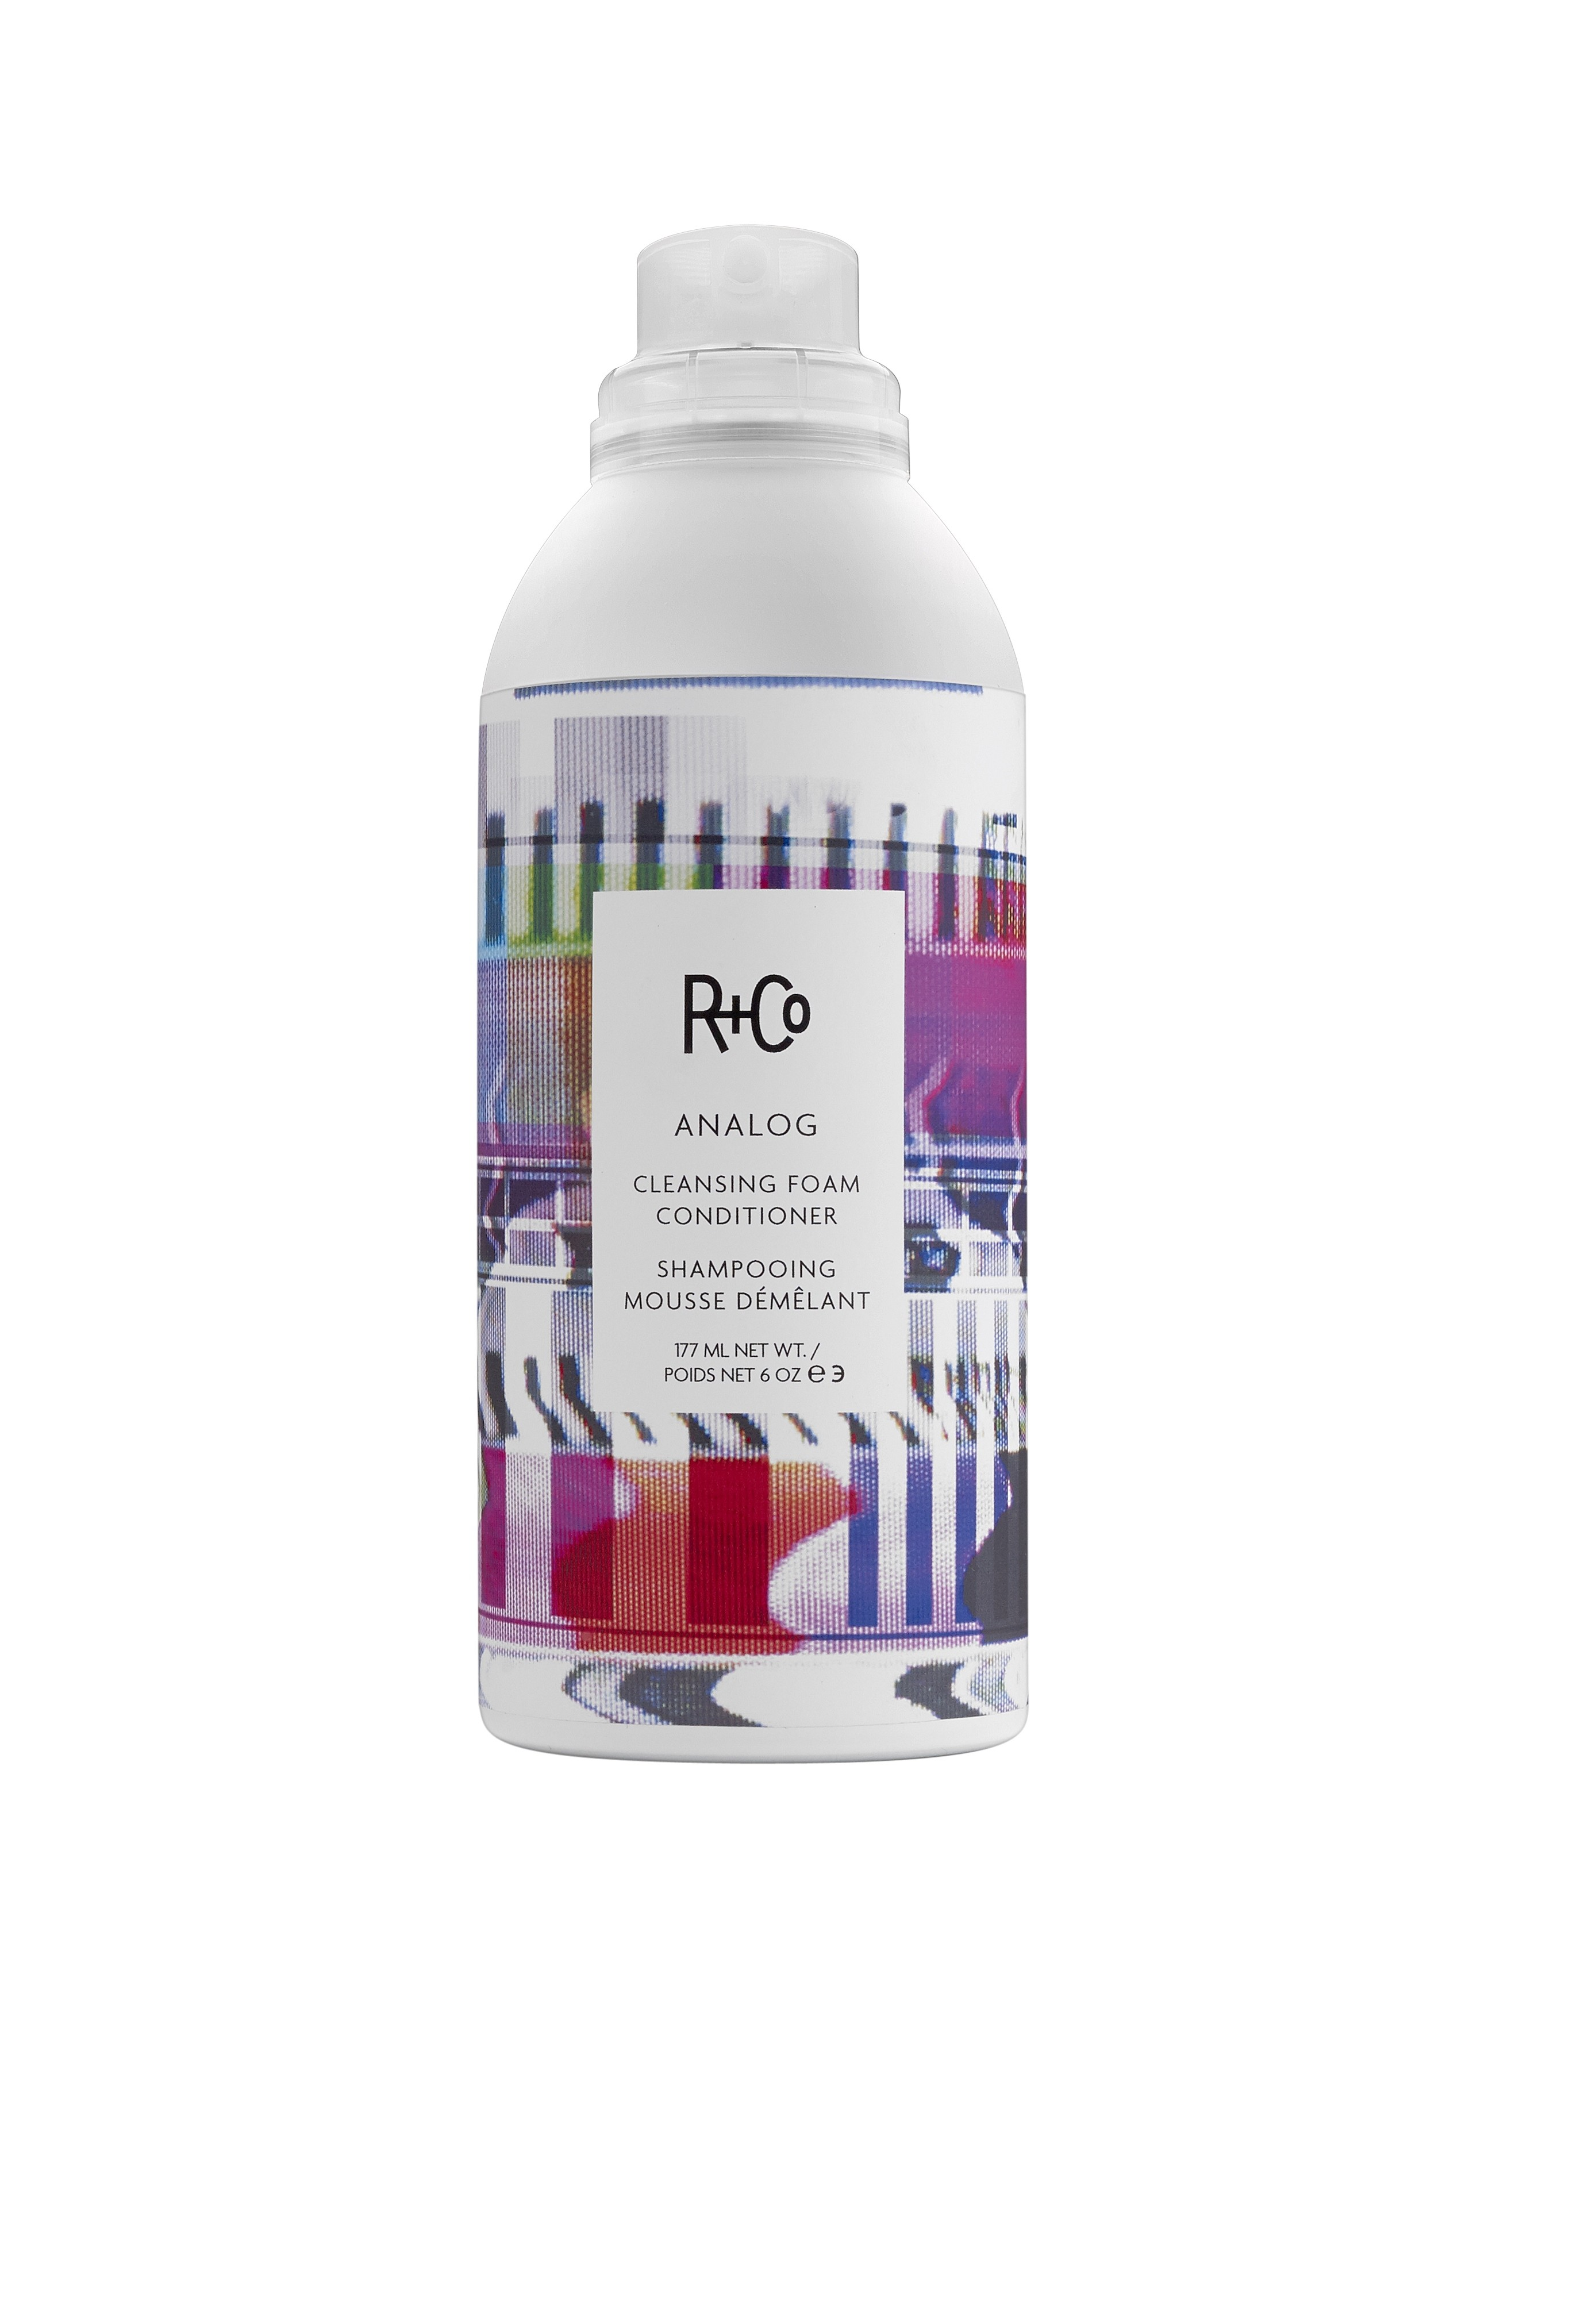 R+Co Analog Cleansing Foam Conditioner, $29, atNeiman Marcus